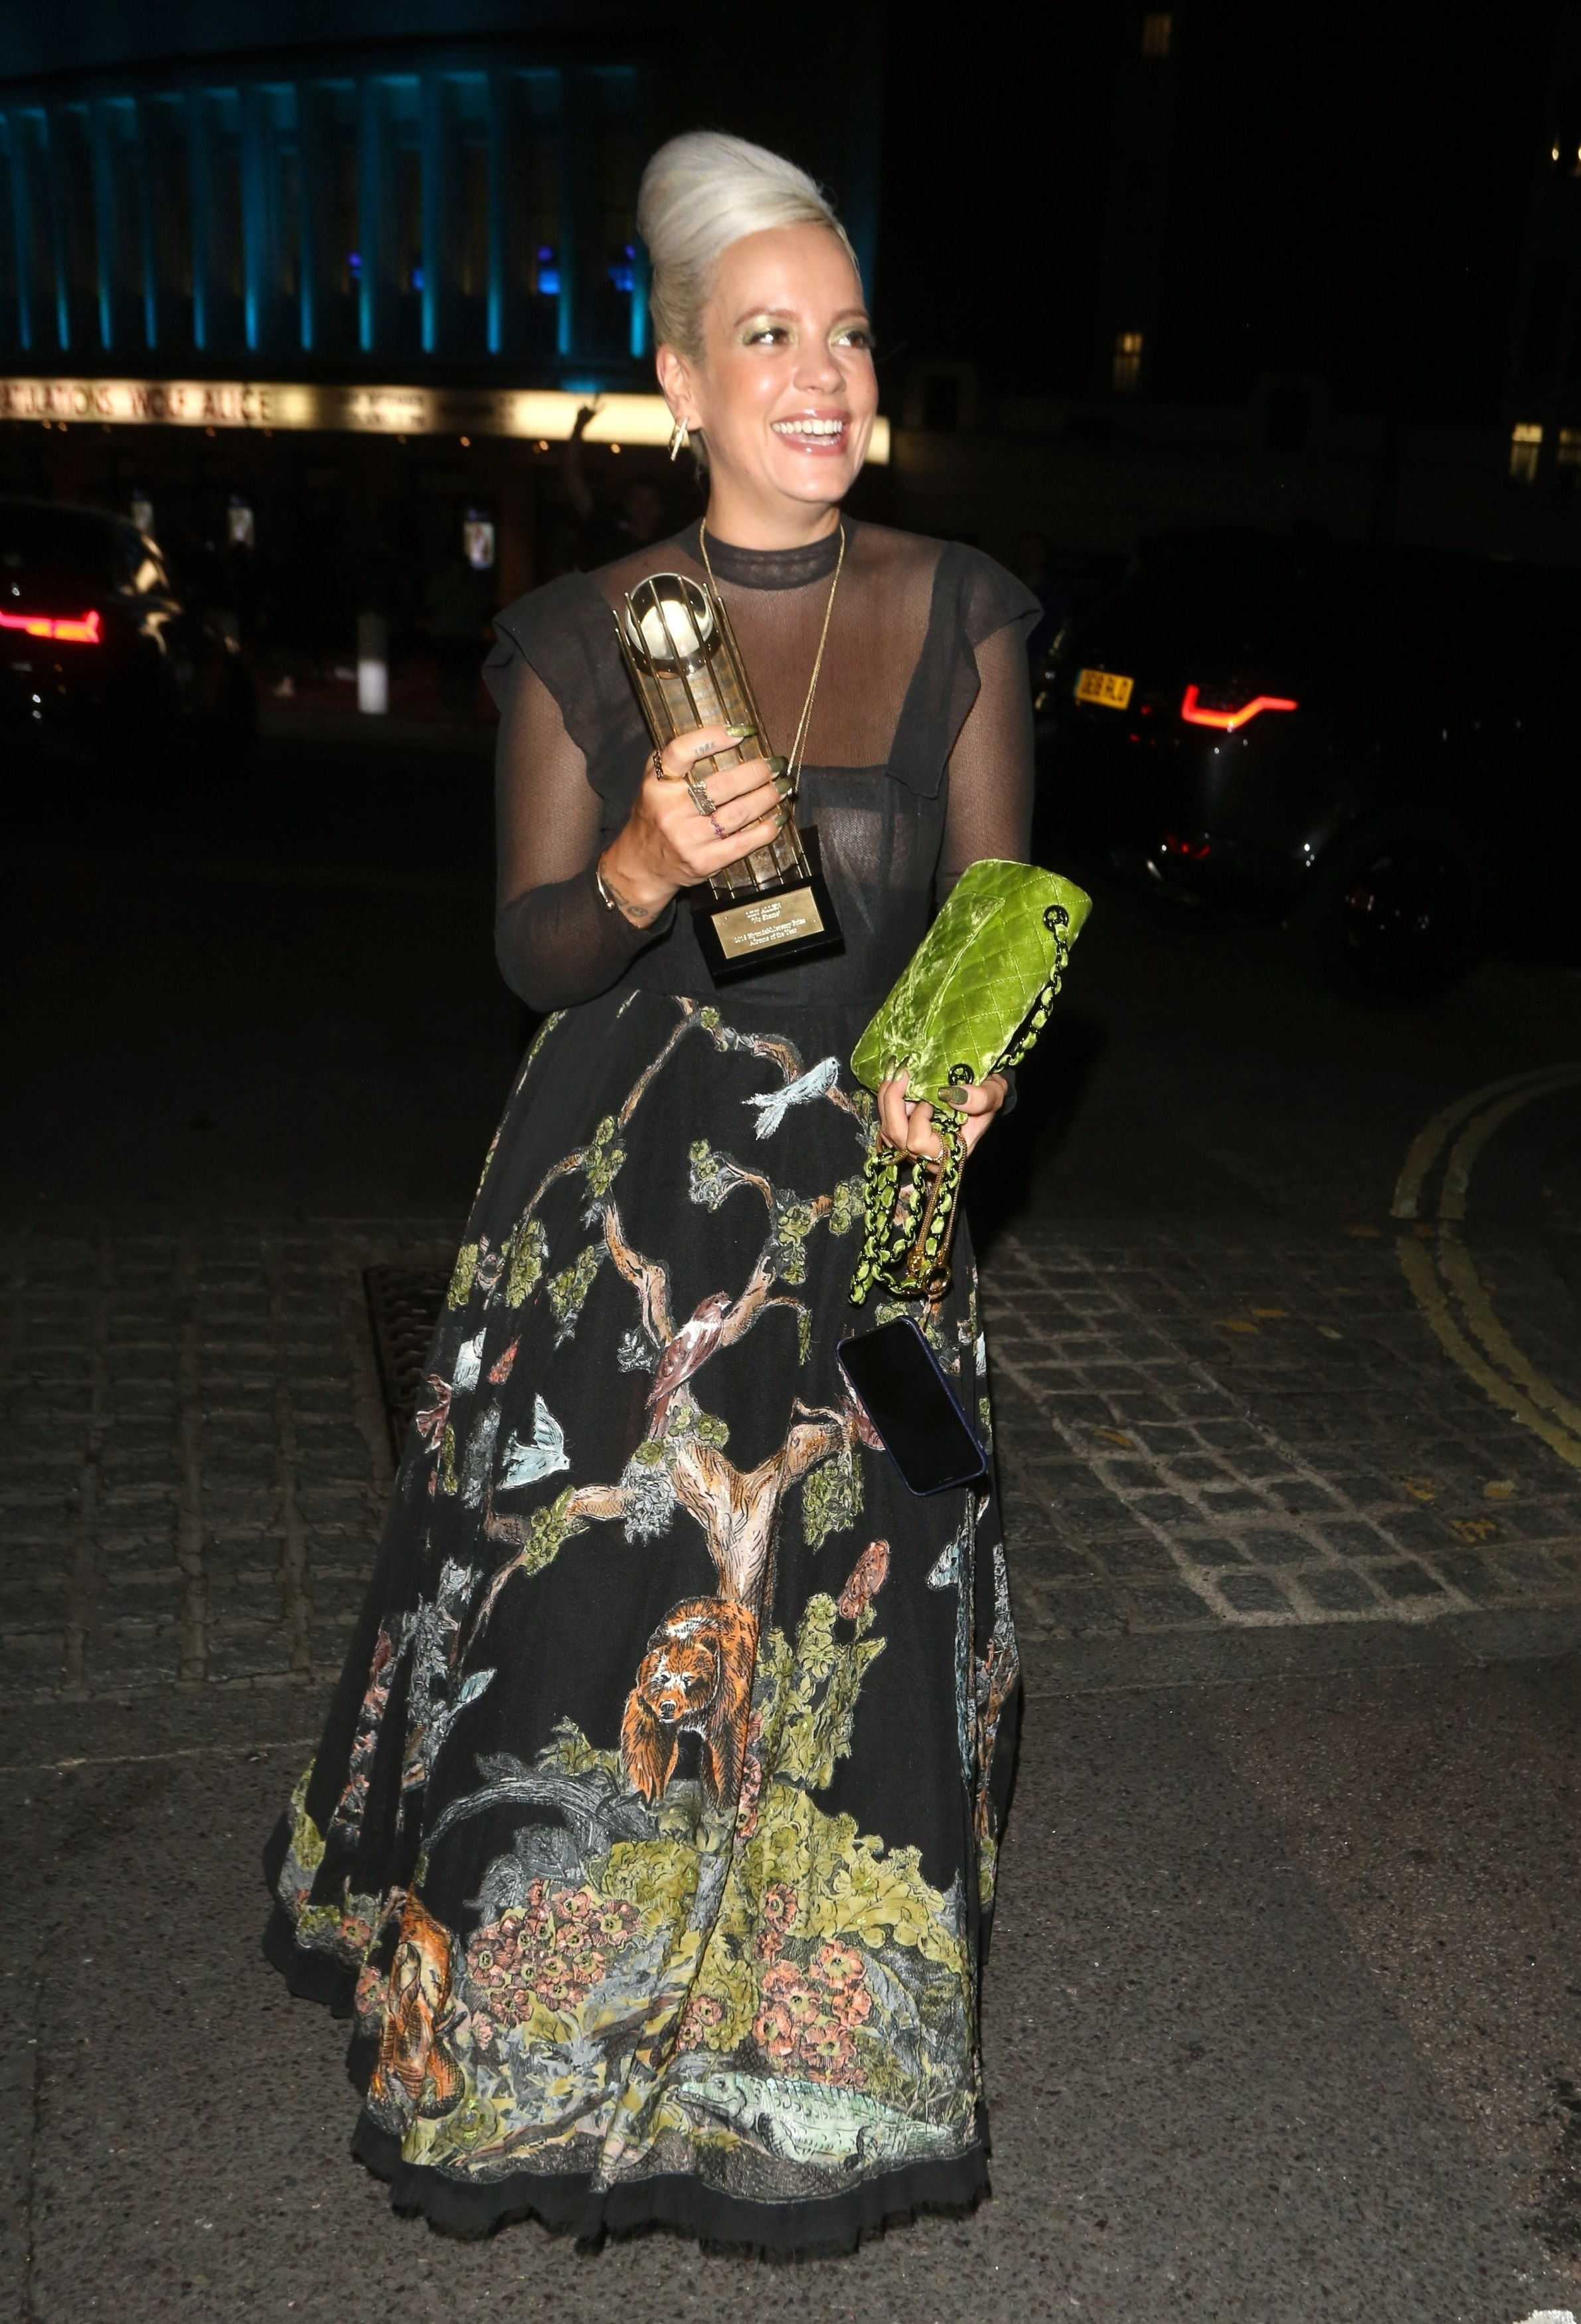 0919040453772_09_Lily-Allen-See-Through-TheFappeningBlog.com-10.jpg